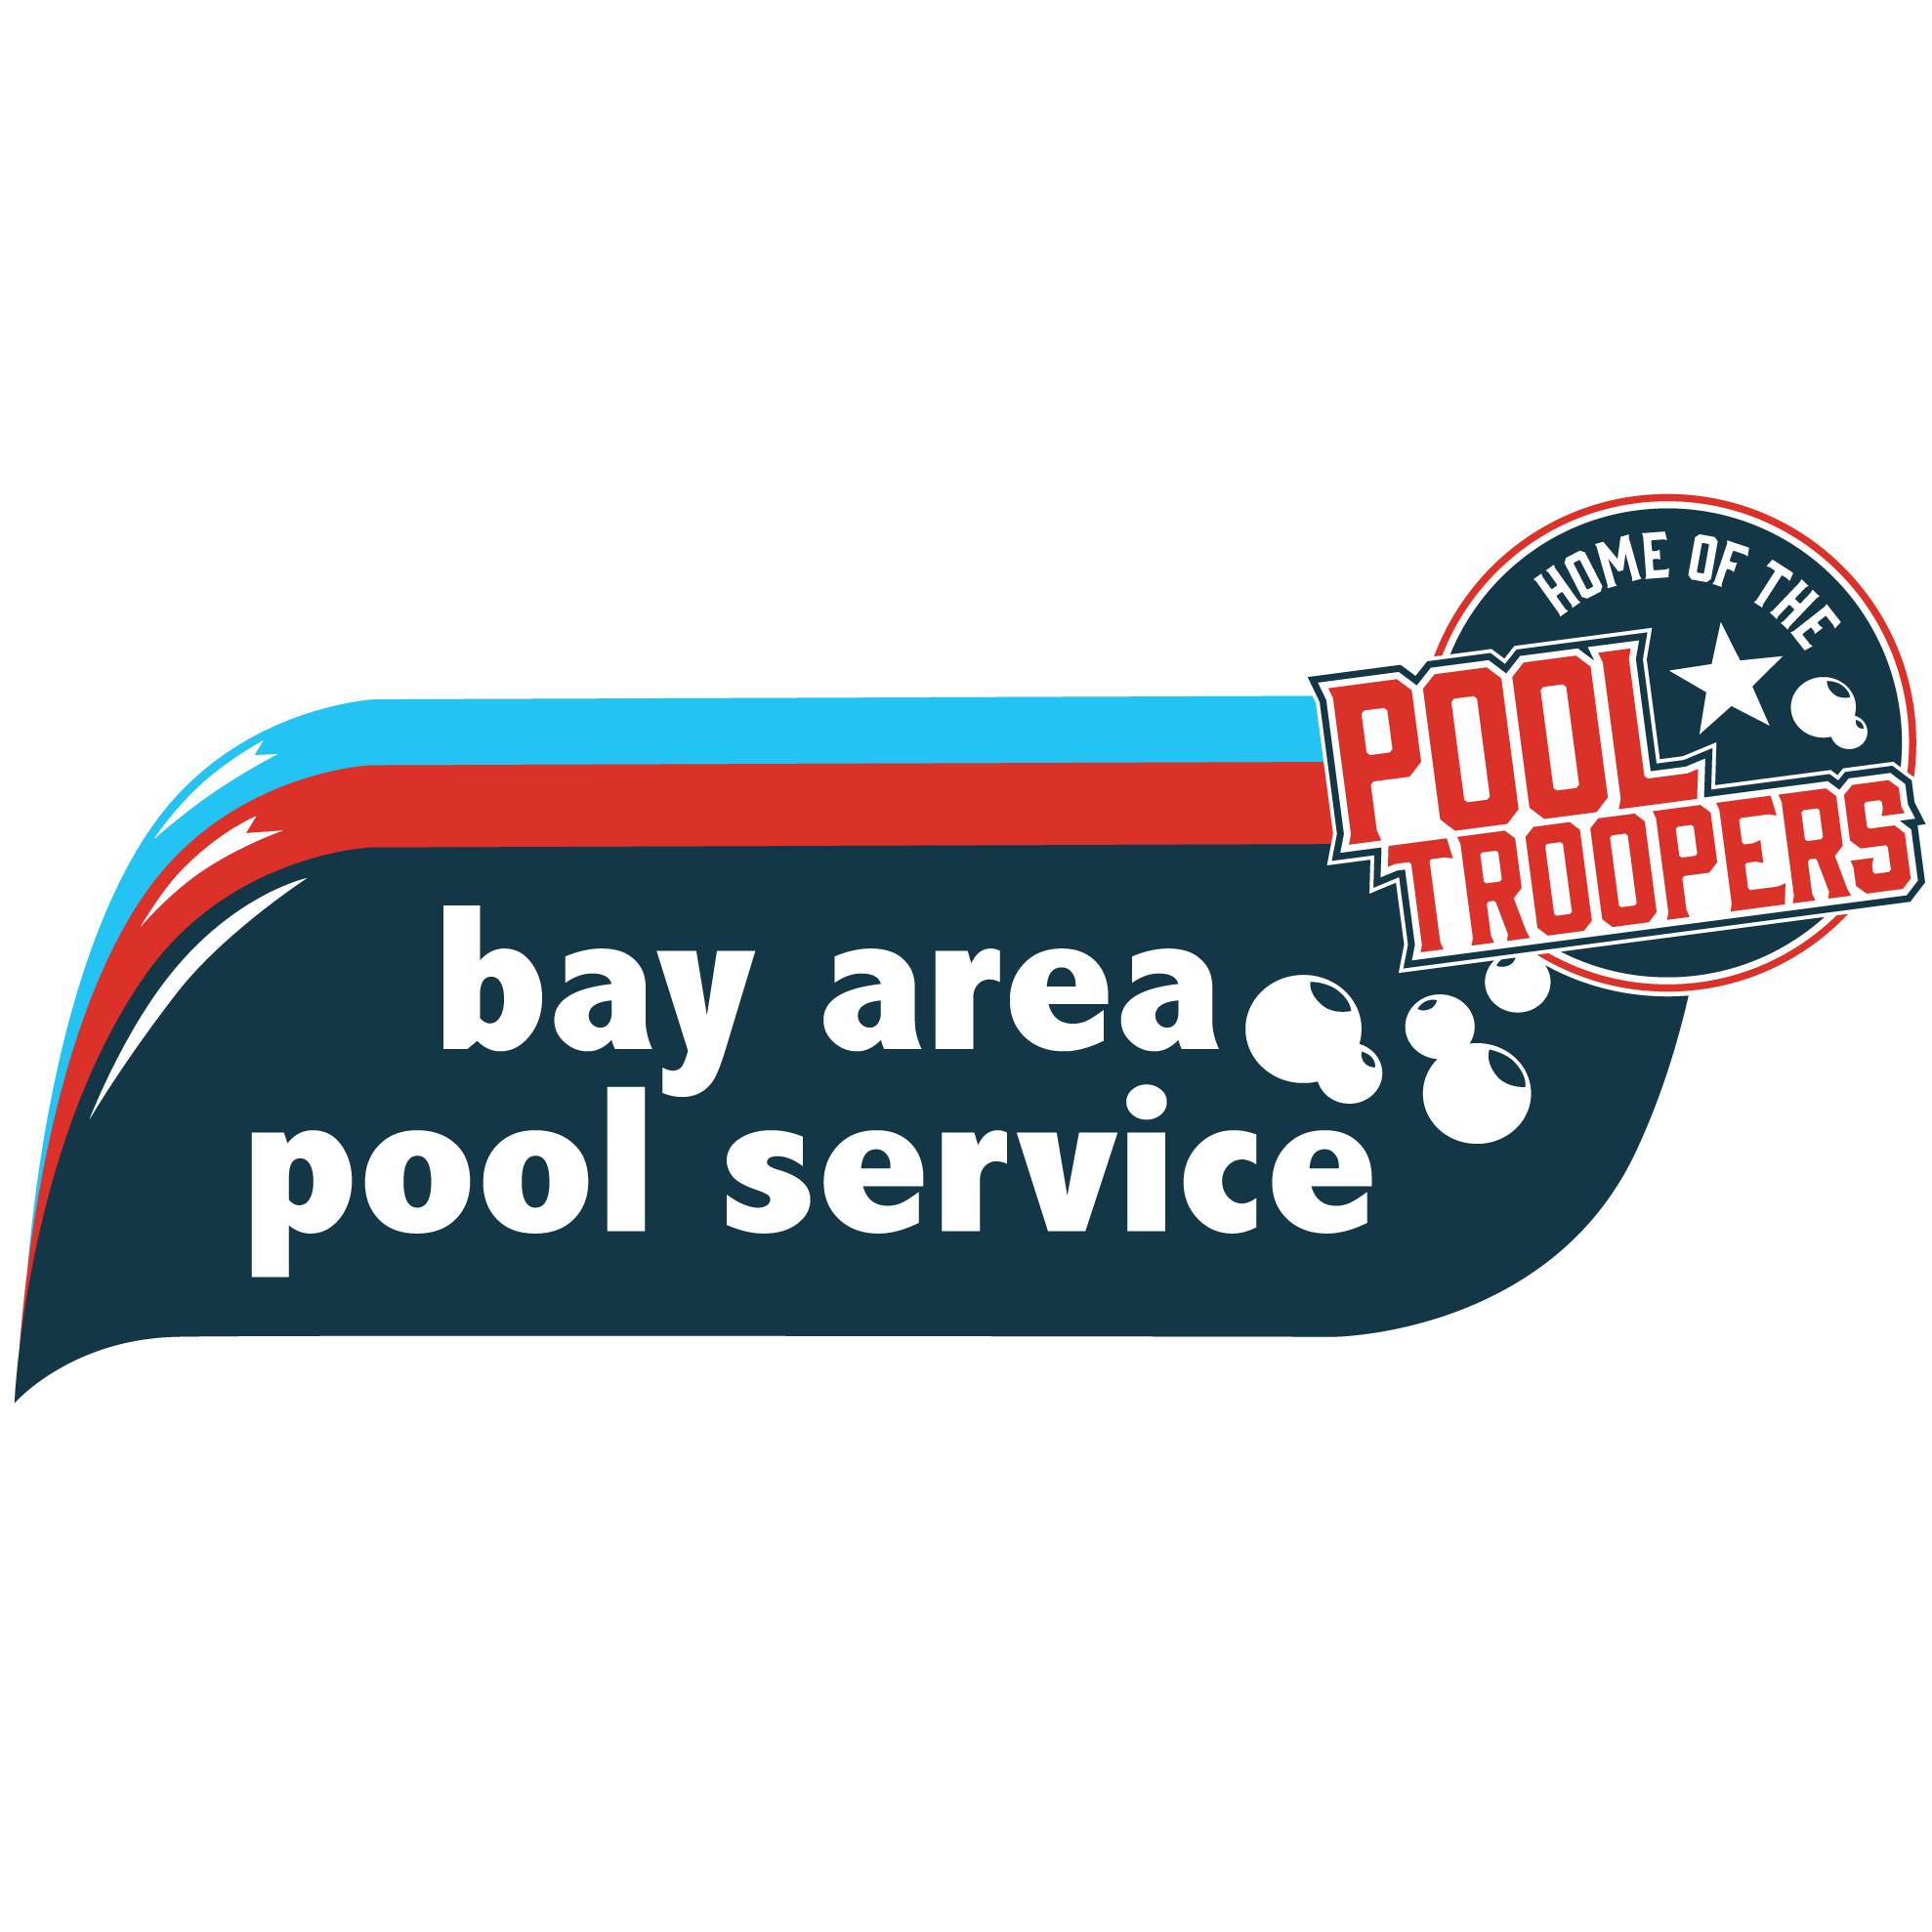 Bay Area Pool Service Home of the Pool Troopers